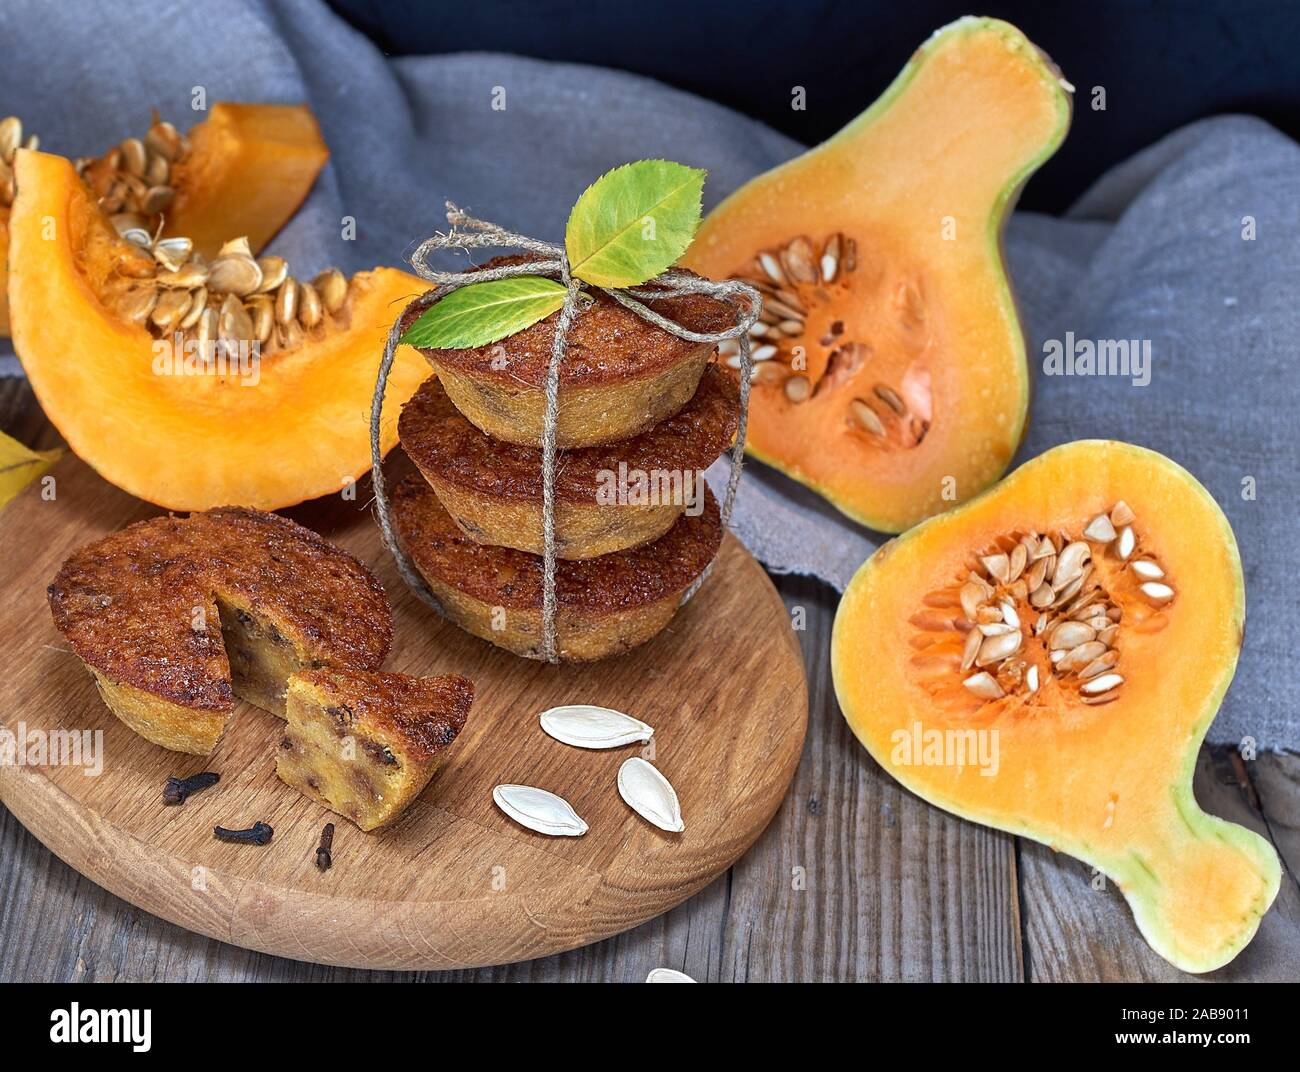 stack of muffins with a pumpkin on a round wooden board and fresh pieces of pumpkin. Stock Photo